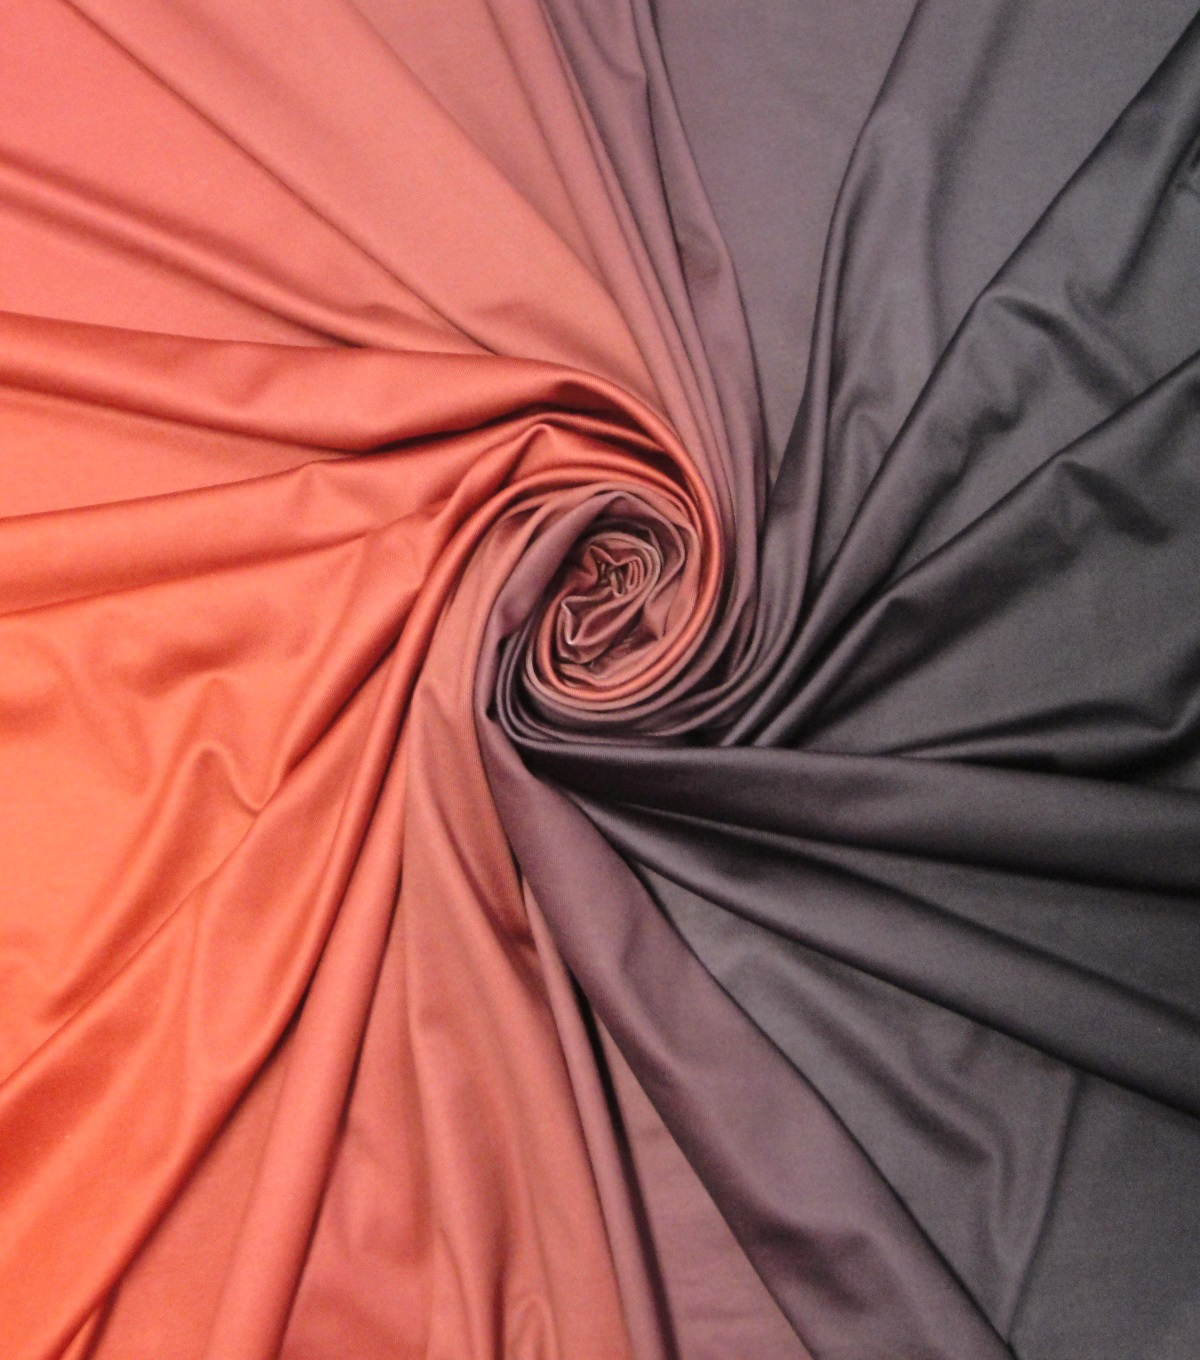 Yaya Han Cosplay Spandex Fabric 60\u0027\u0027-Ombre Black, Burgundy & Red